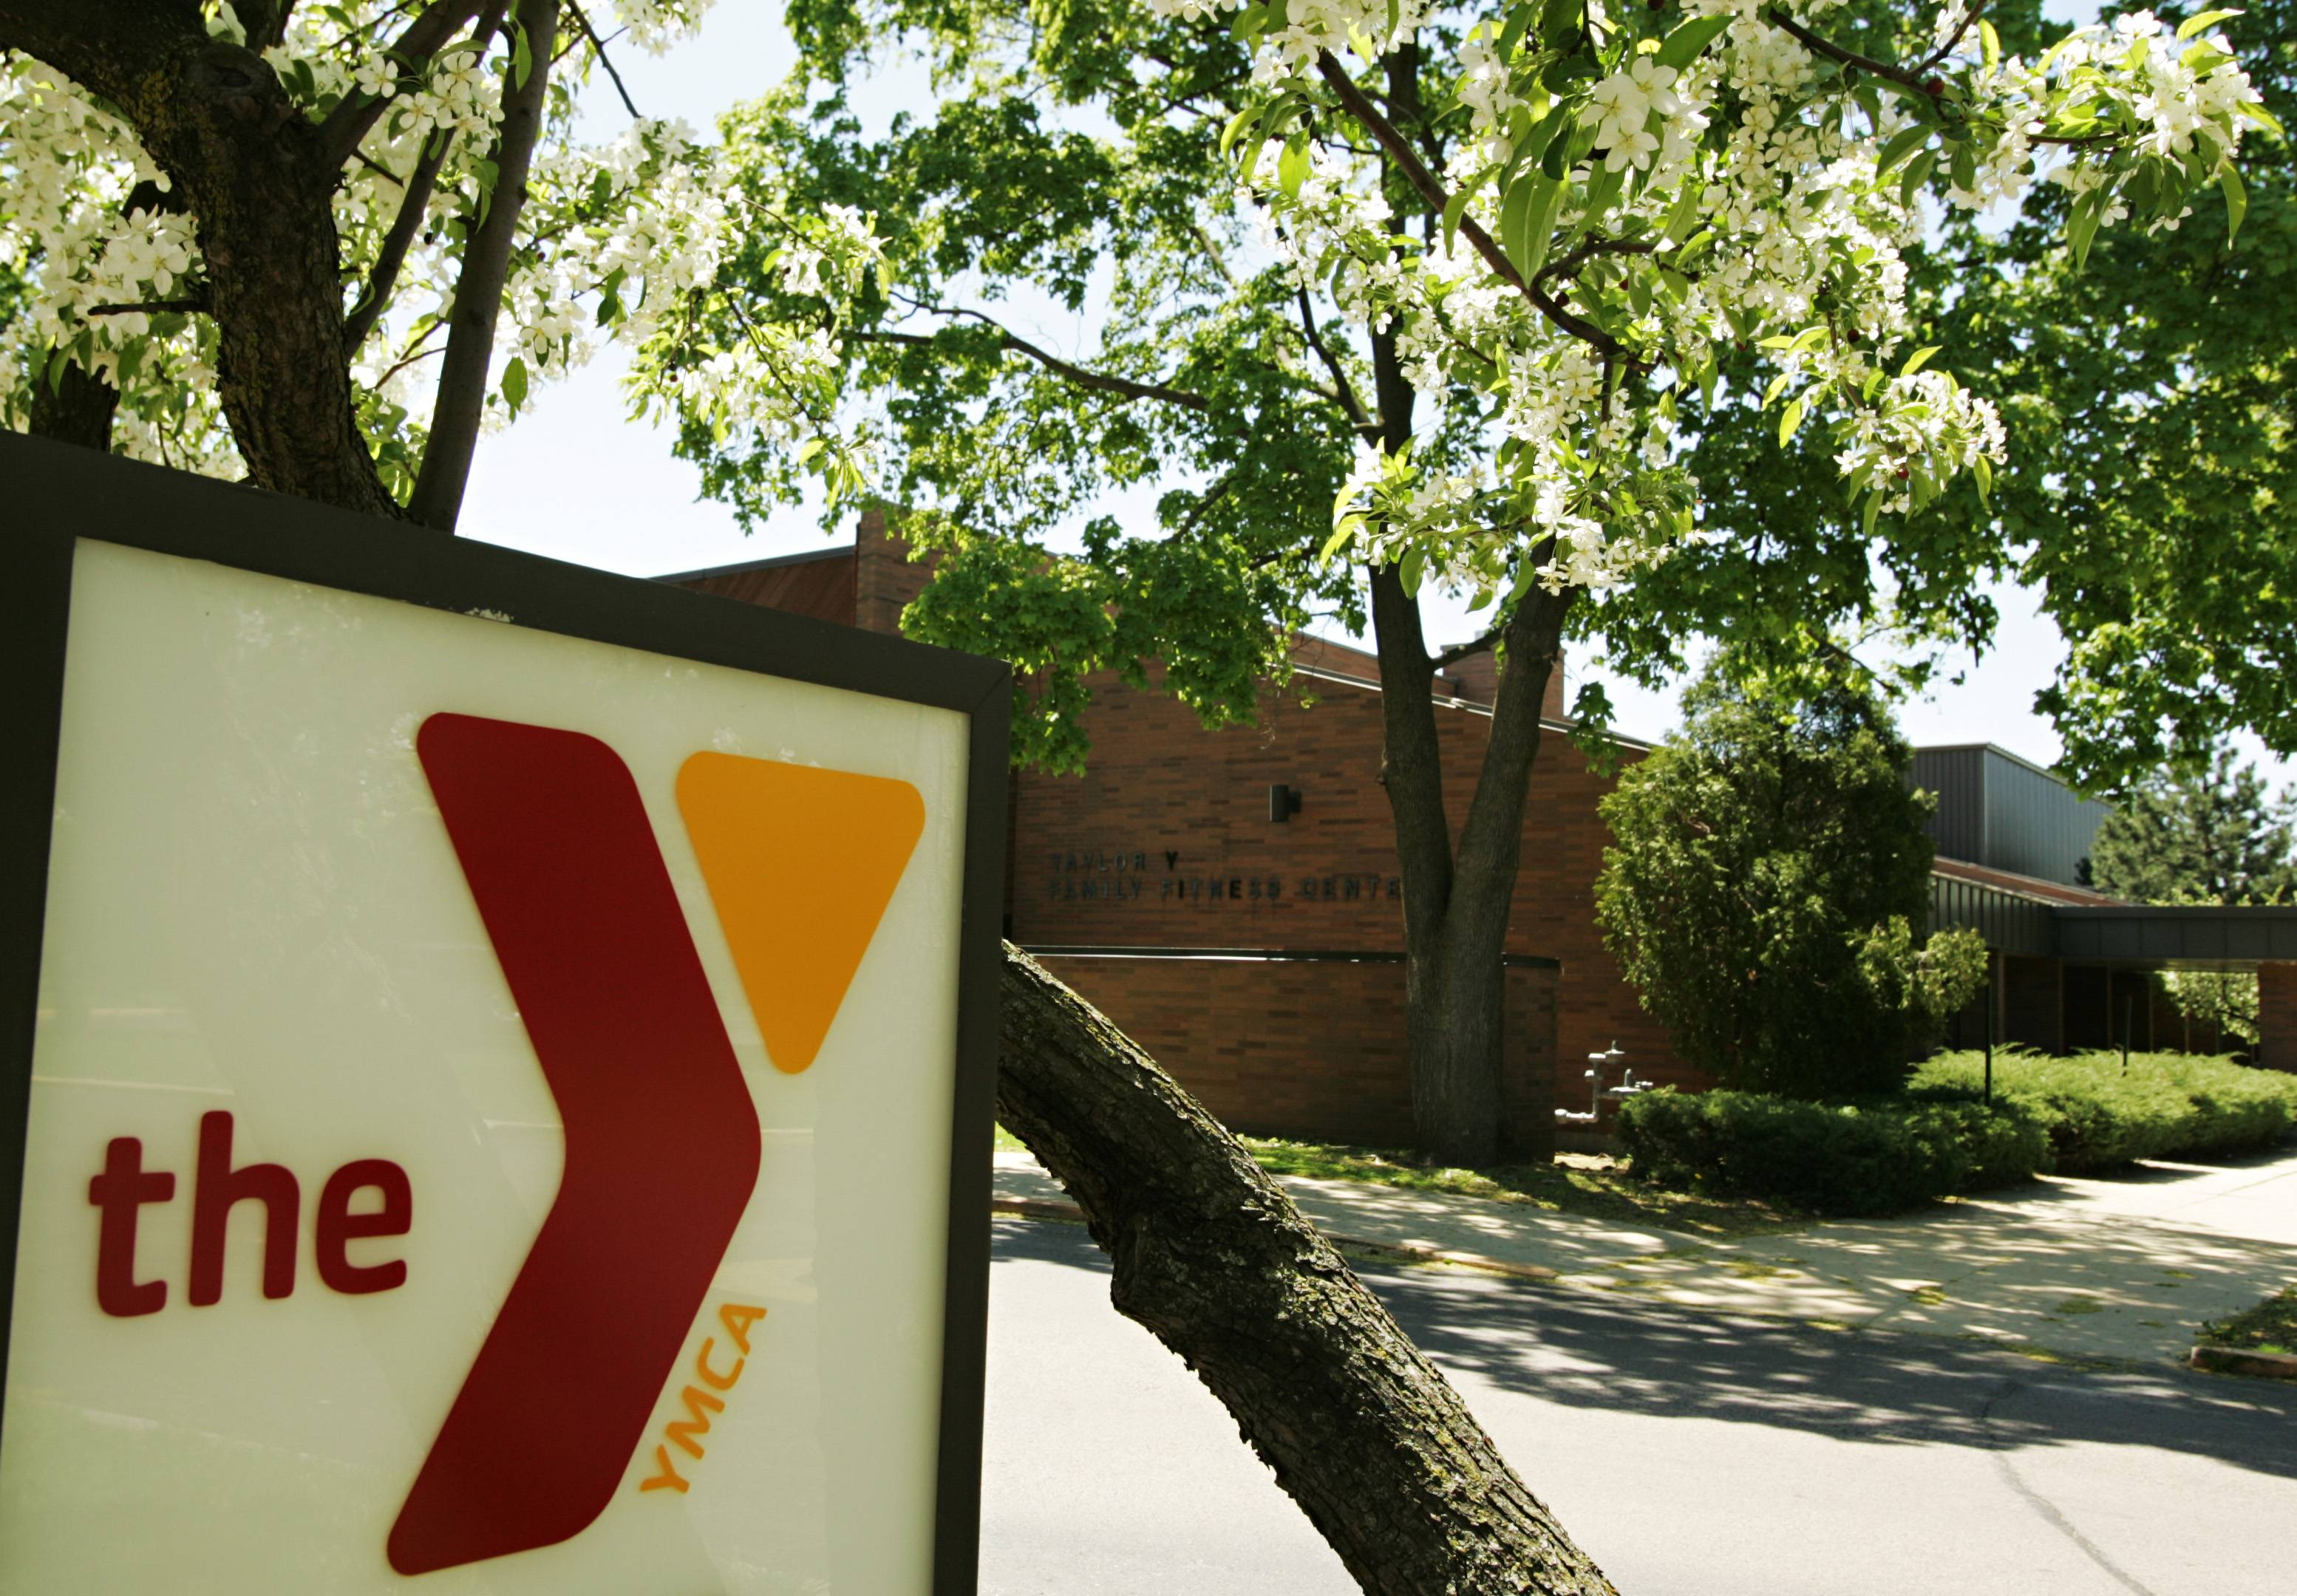 Talks continue to progress toward a formal merger between the Prairie Valley Family YMCA, which operates the Taylor Family Branch on Elgin's west side and three other facilities, and the Campanelli YMCA in Schaumburg. A final decision on the proposal is expected in the next few months, officials say.